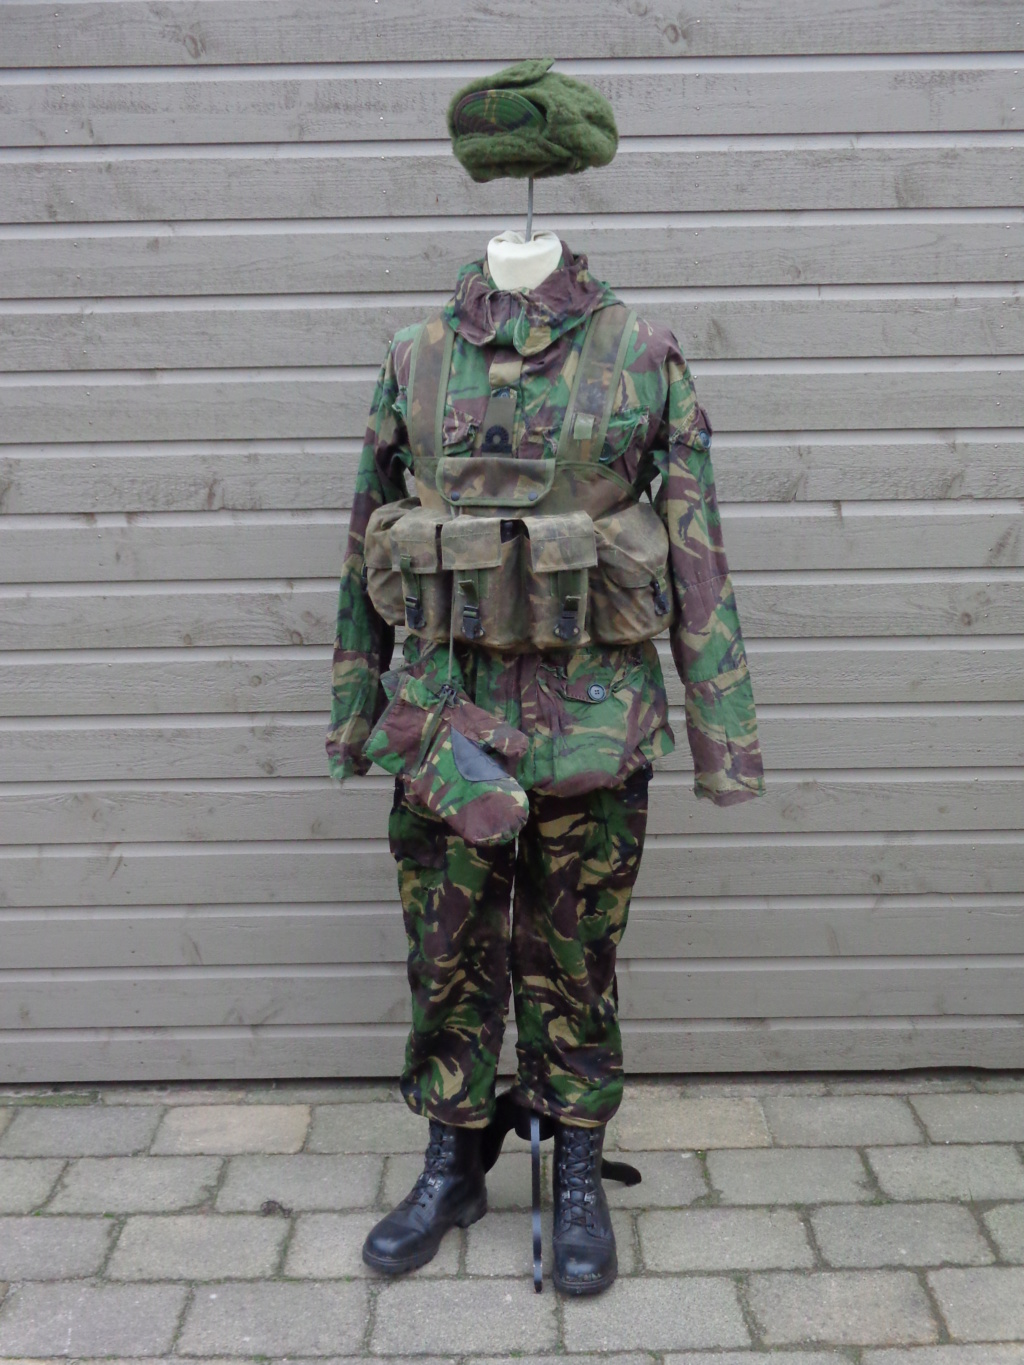 Dutch army loadout displays (cold war era) - Page 3 Nederl17